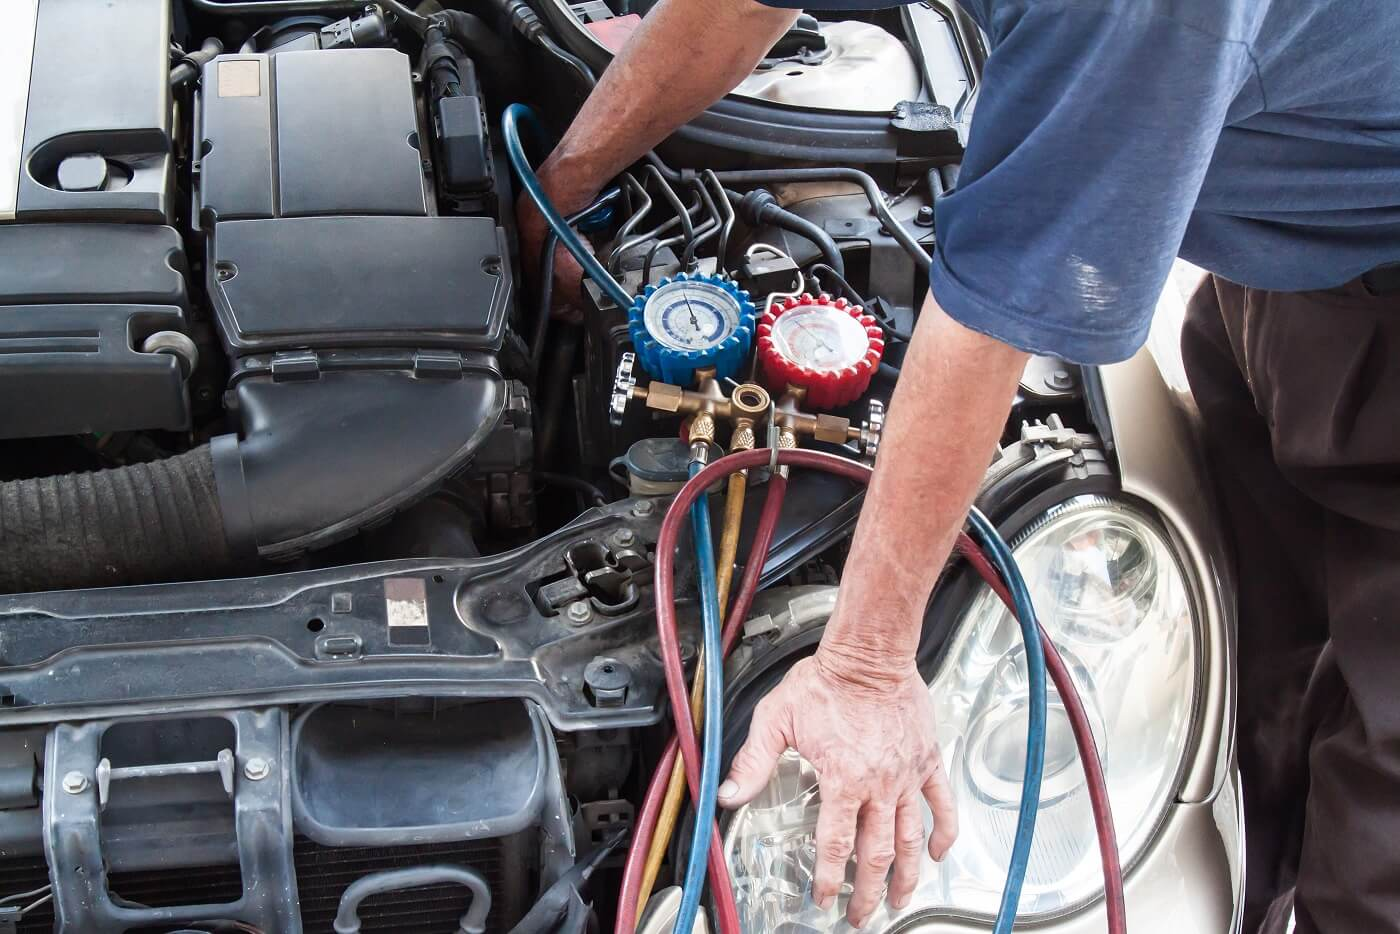 air con regas in progress, mechanic checking flow of refrigerant gas with specialist equipment